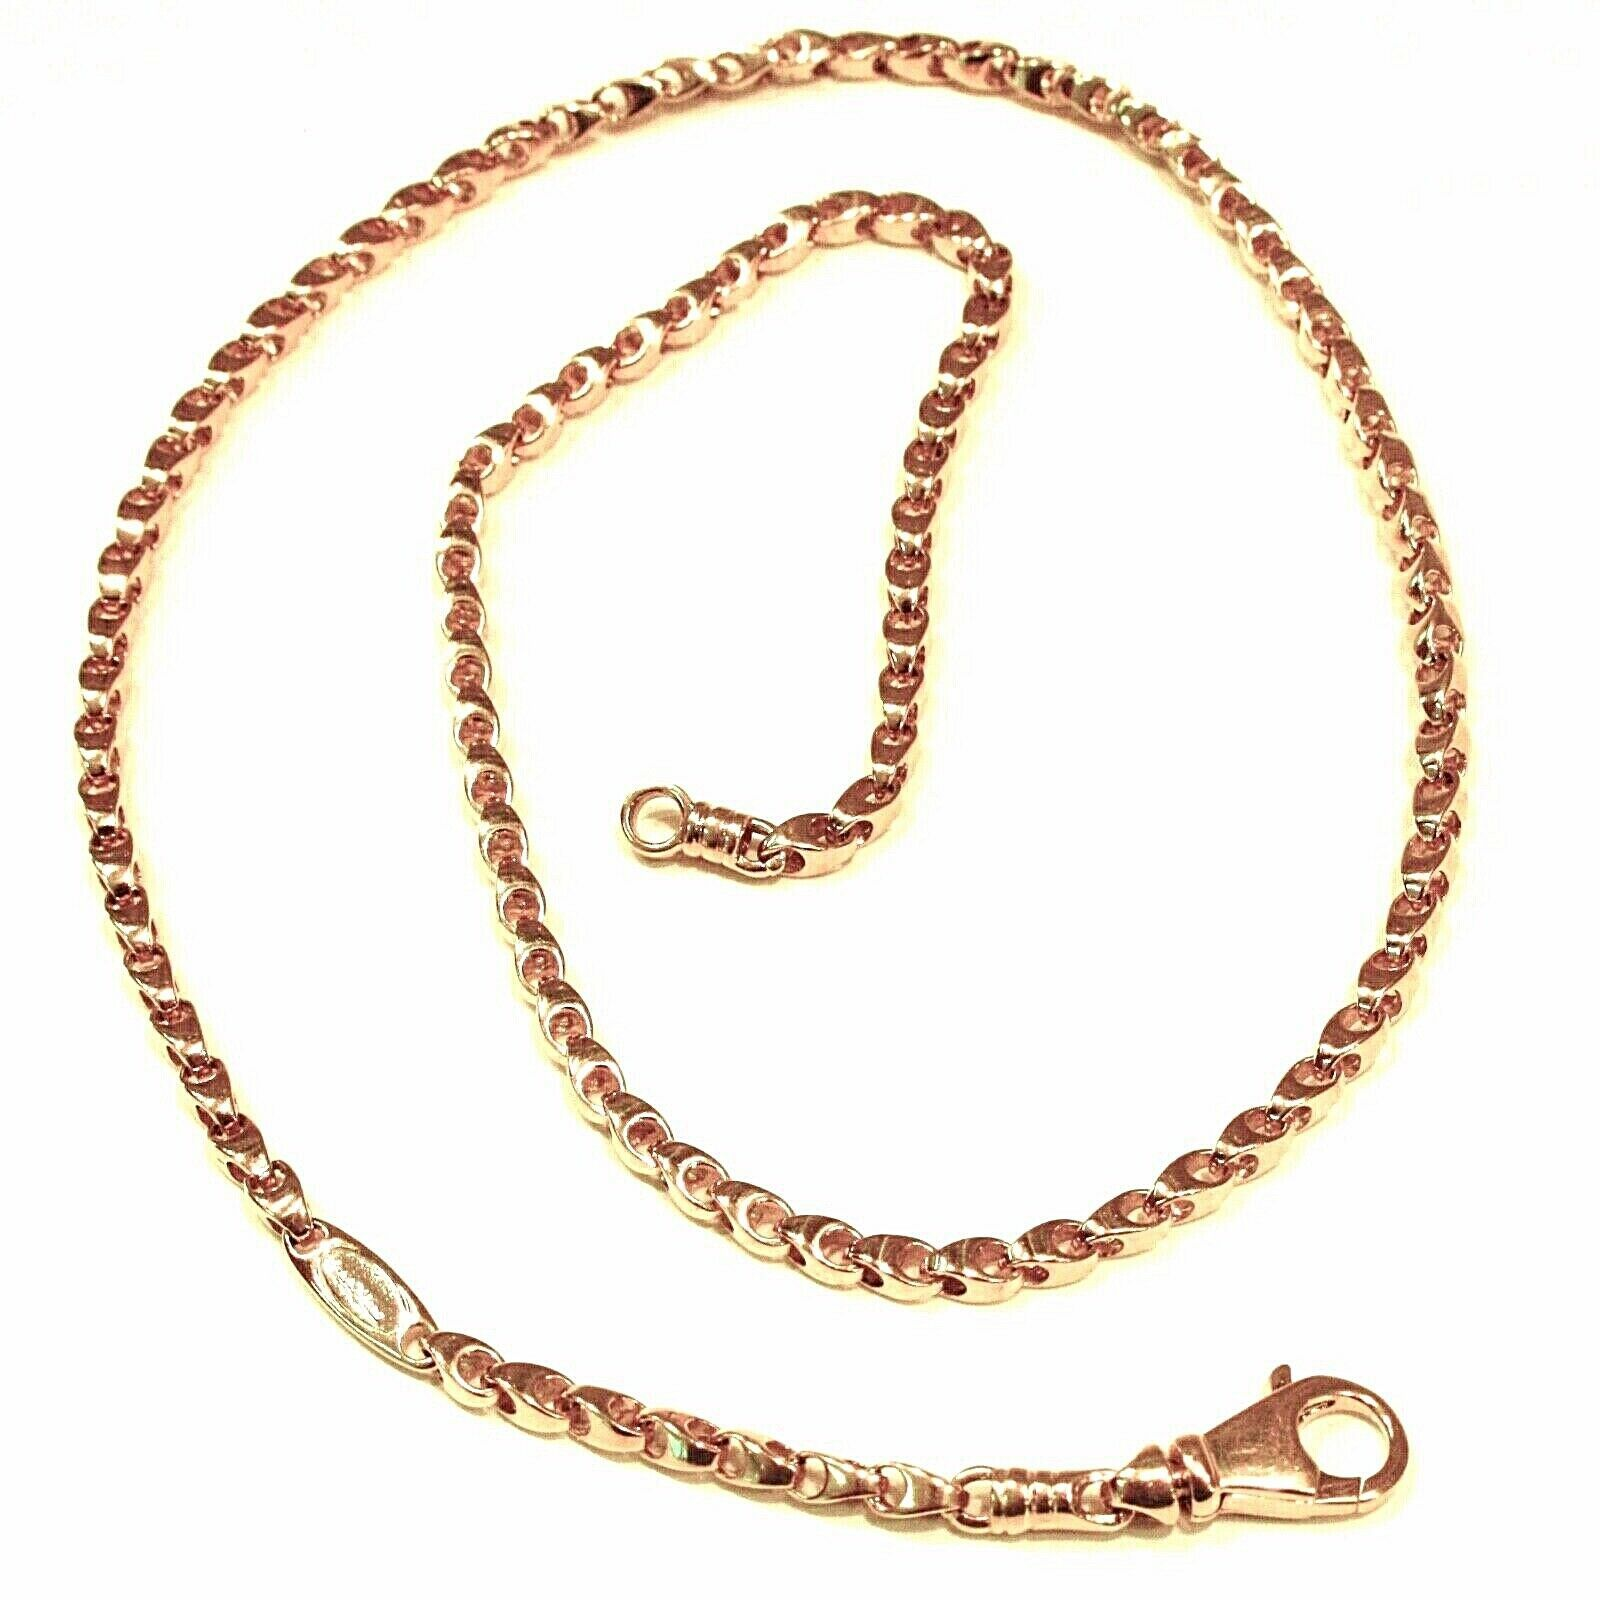 SOLID 18K YELLOW GOLD CHAIN, 24 INCHES, 3 MM DROP TUBE LINK, POLISHED NECKLACE